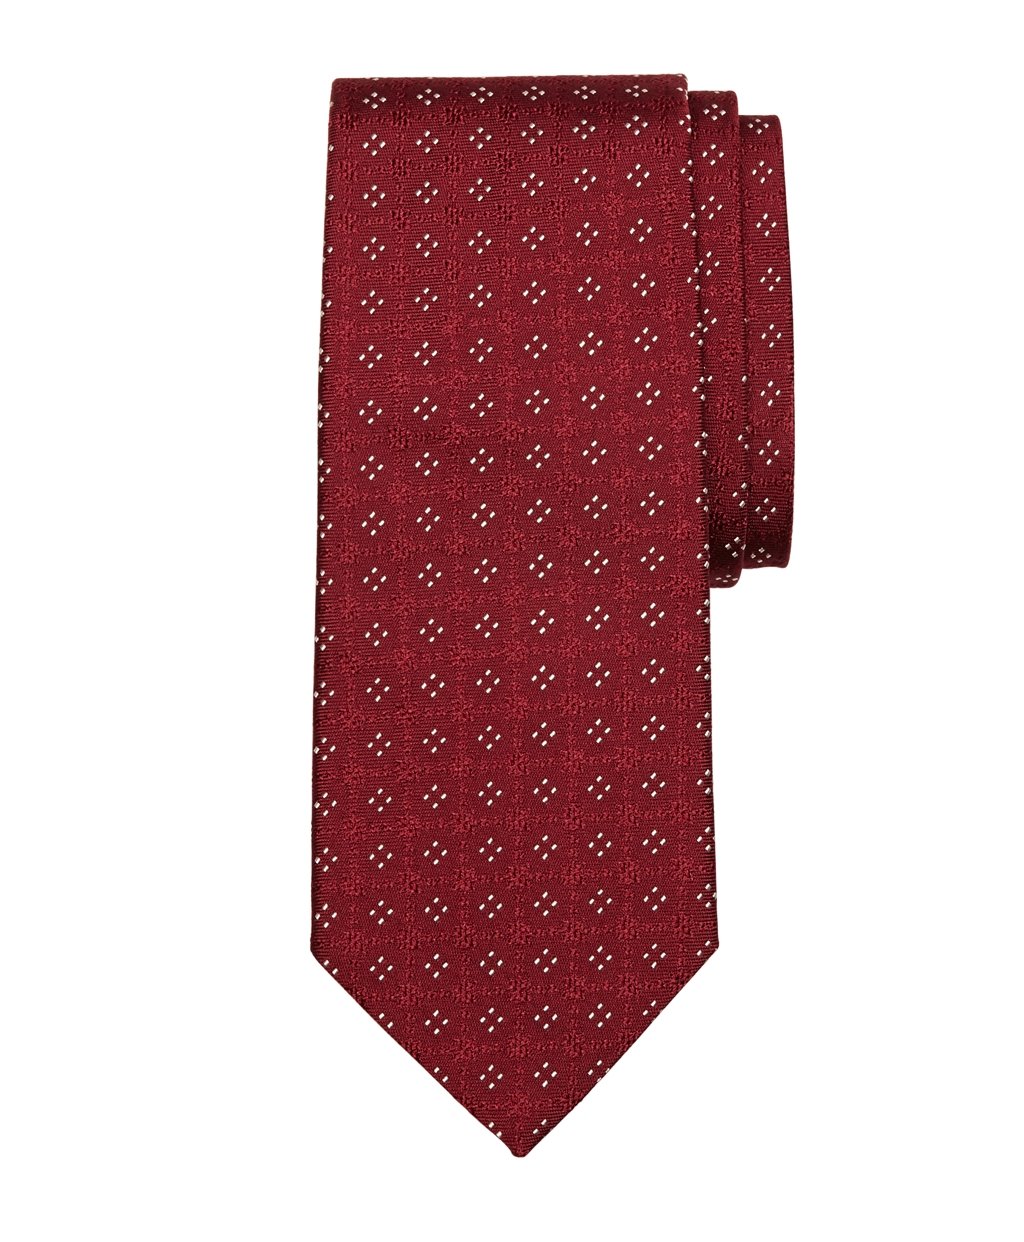 Men's Vintage Style Clothing Brooks Brothers Mens Four-Dot Tie $79.50 AT vintagedancer.com